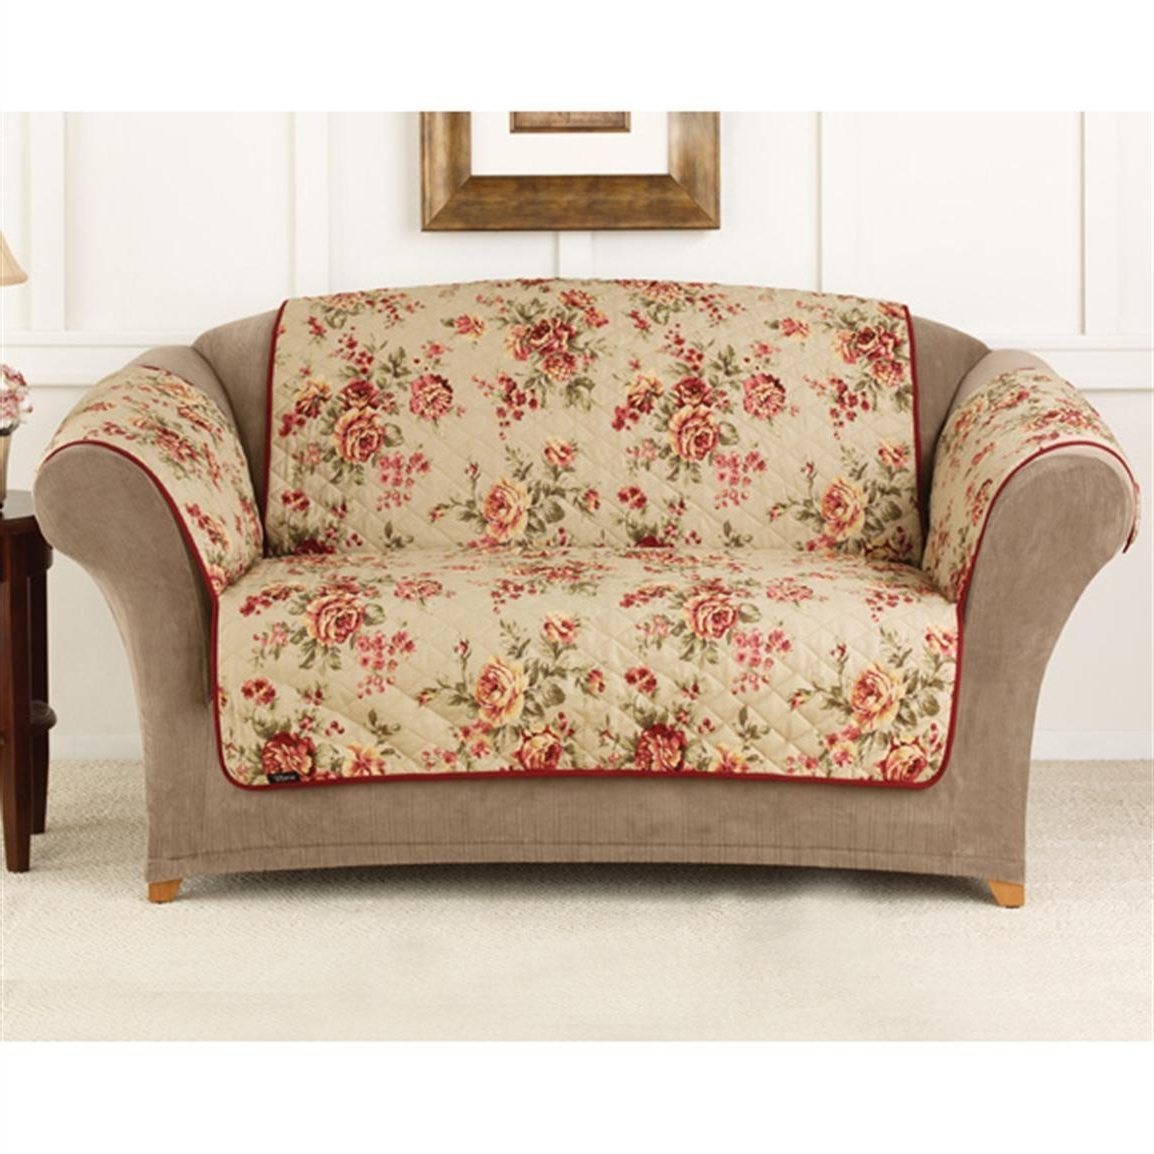 Trendy Chintz Sofas Pertaining To Furniture : Covers For Sofas And Couch Sure Fit Lexington Floral (View 20 of 20)